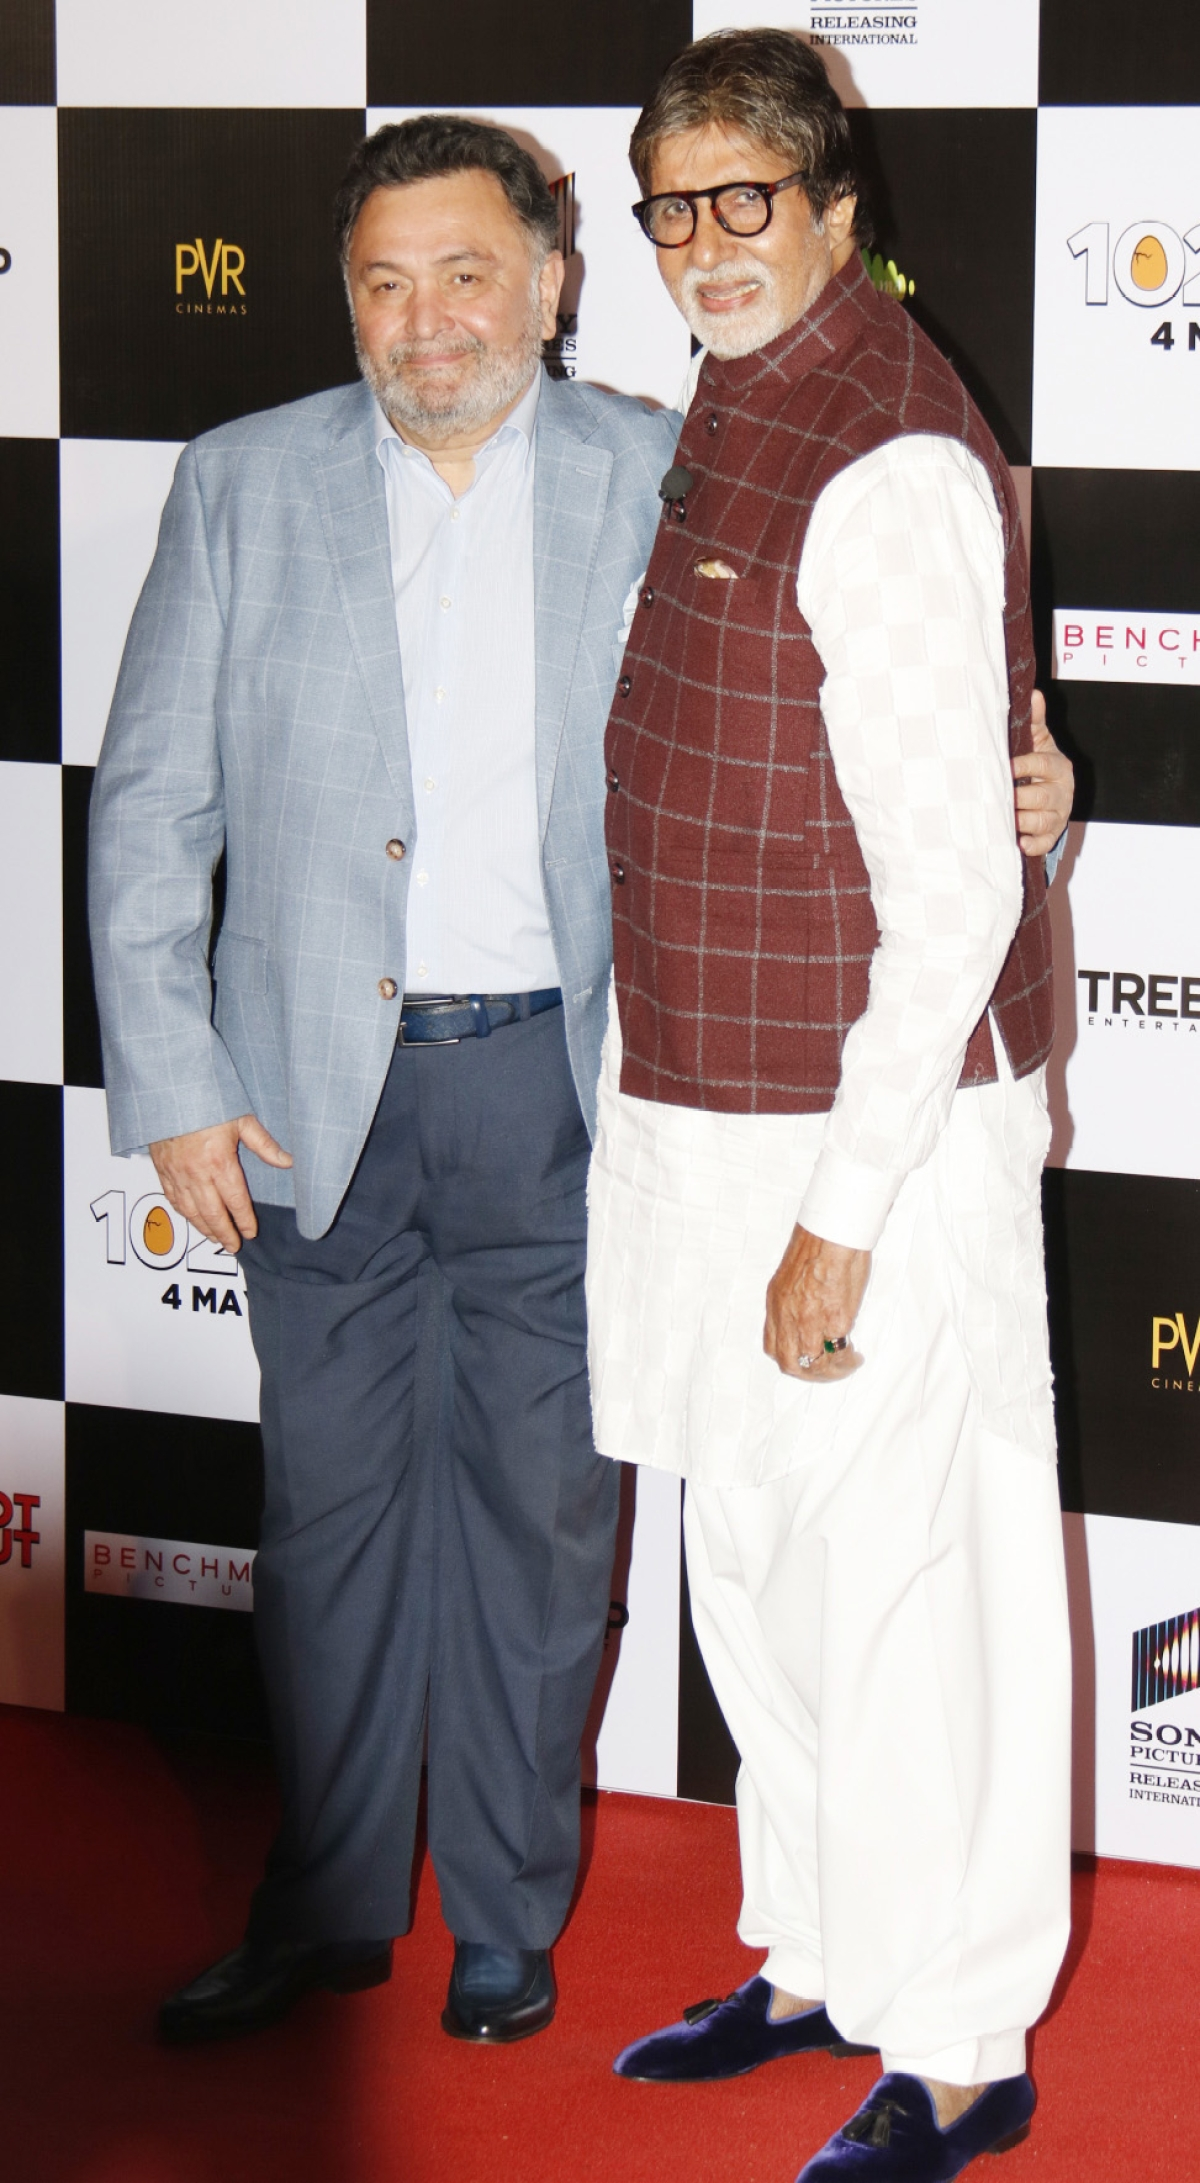 Rishi Kapoor and Amitabh Bachchan pose for the cameras.